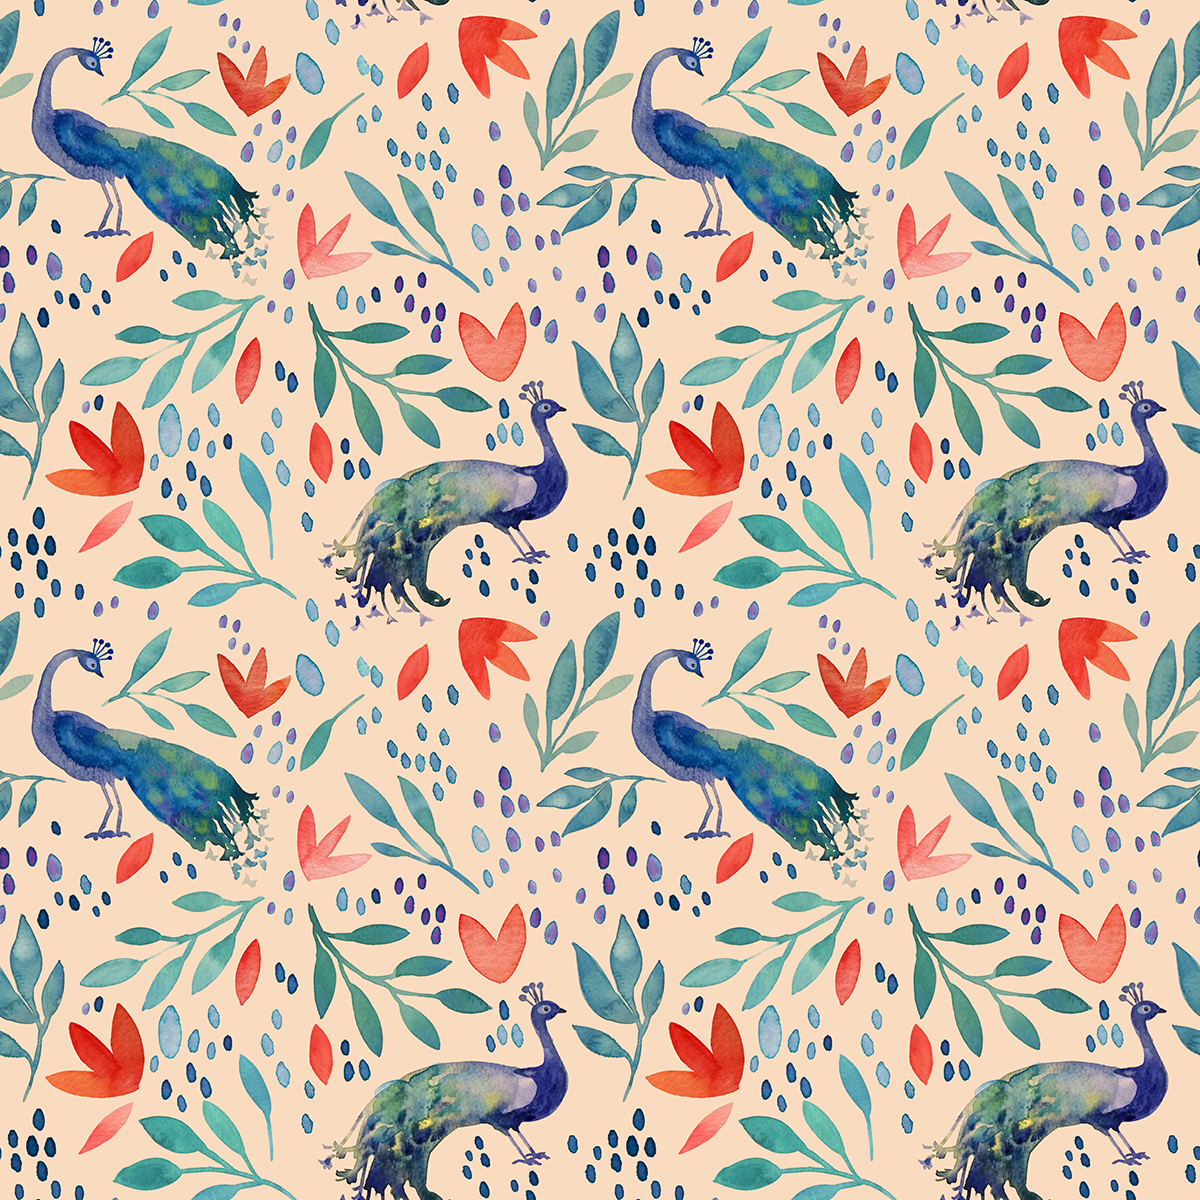 01-mariaover-peacocks-pattern-repeat.jpg